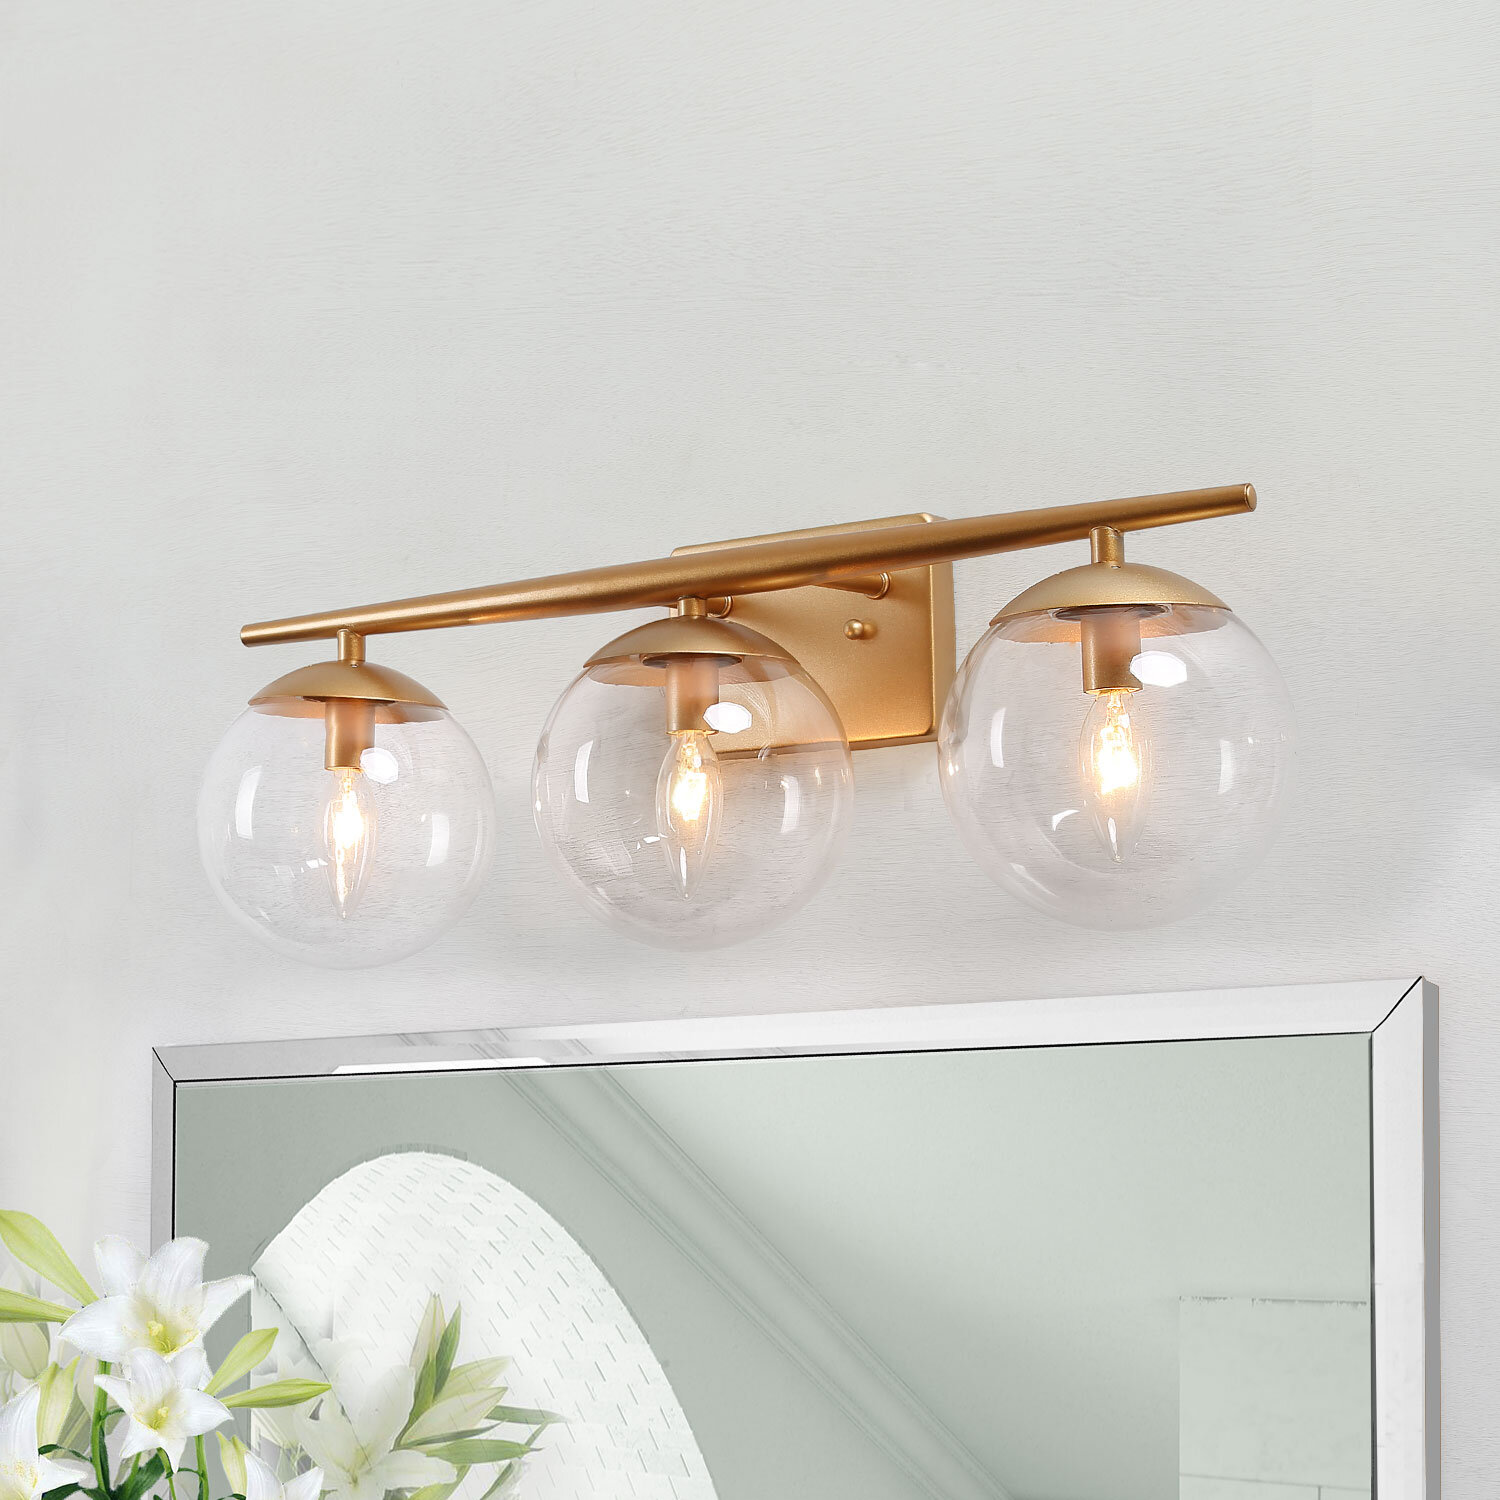 Gold Mid Century Modern Bathroom Vanity Lighting You Ll Love In 2021 Wayfair